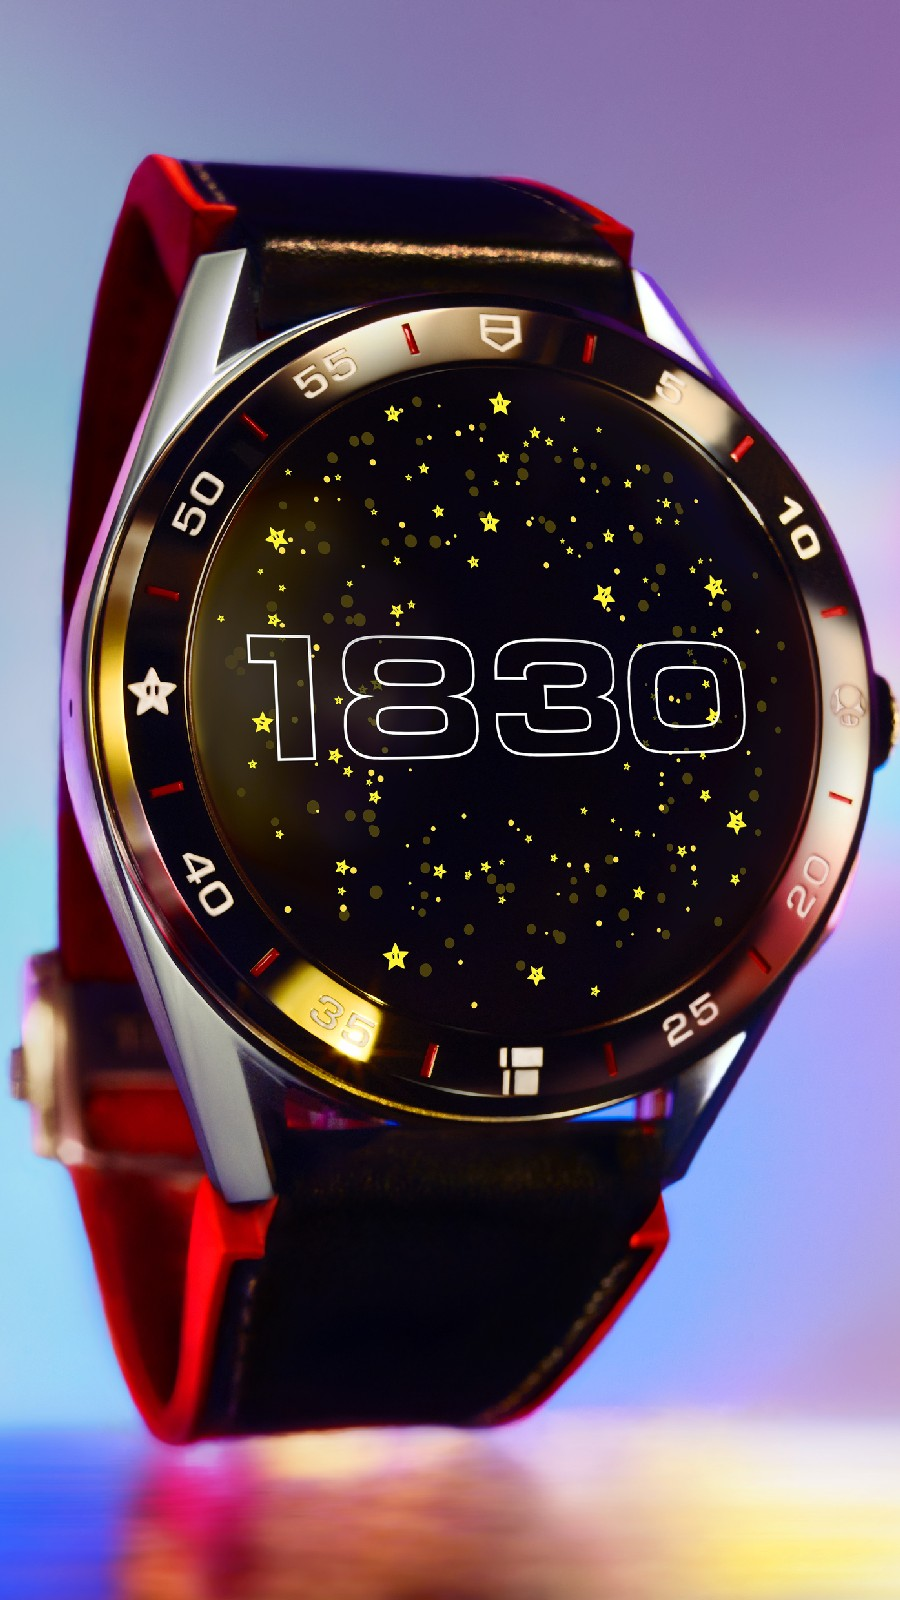 <p>Tag Heuer Connected Limited Edition Super Mario with a red-and-black strap. The watch face features the numbers 1830 in retro font, against a background of stars. [Close up]</p>